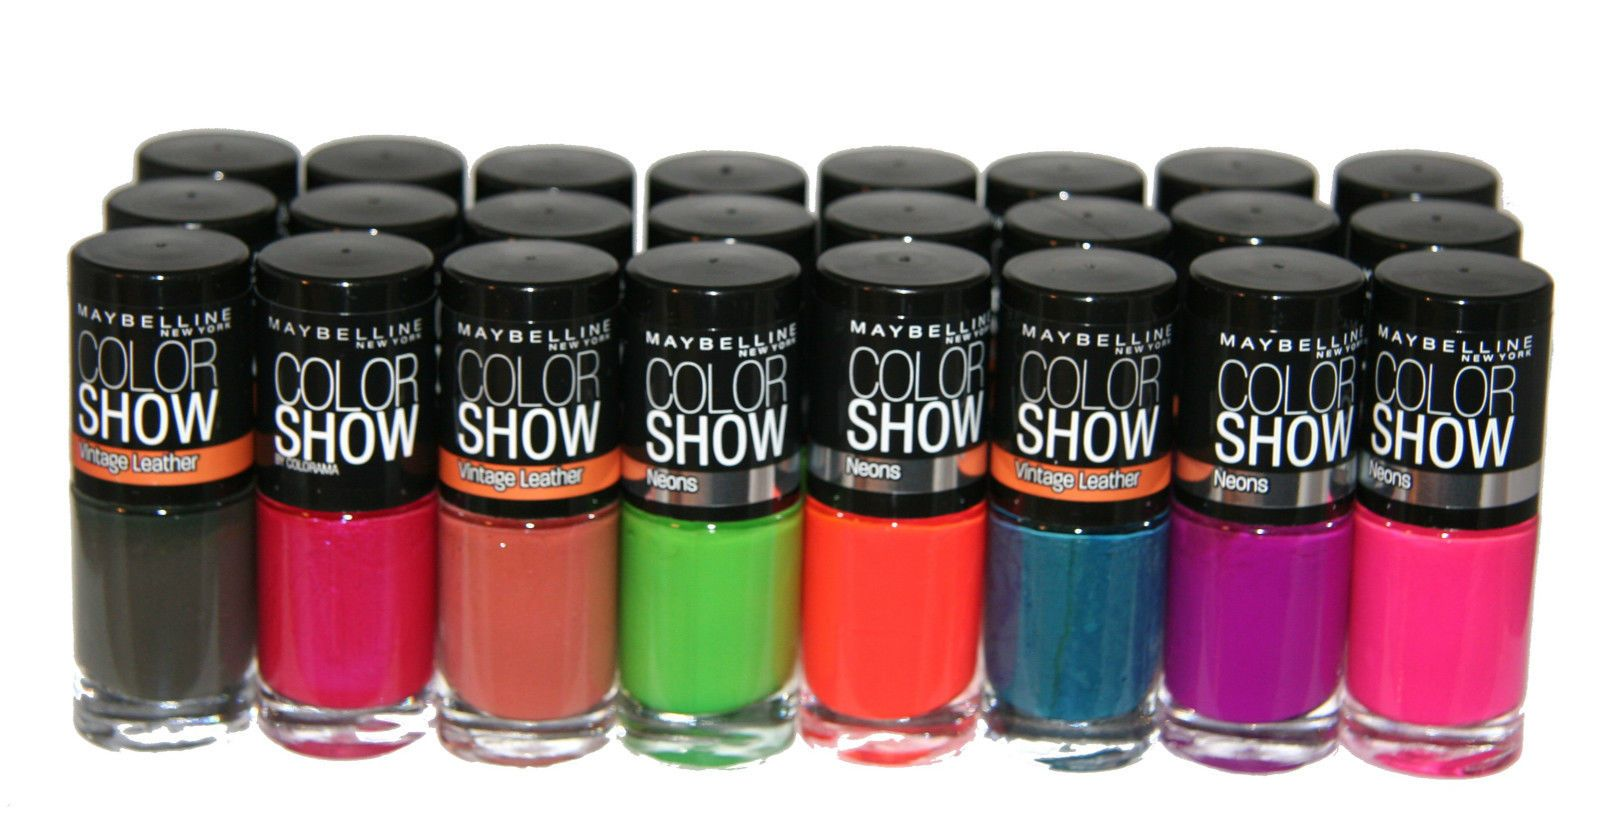 24 x Maybelline Color Show Nail Polish RRP 96 Neons & Vintage ...